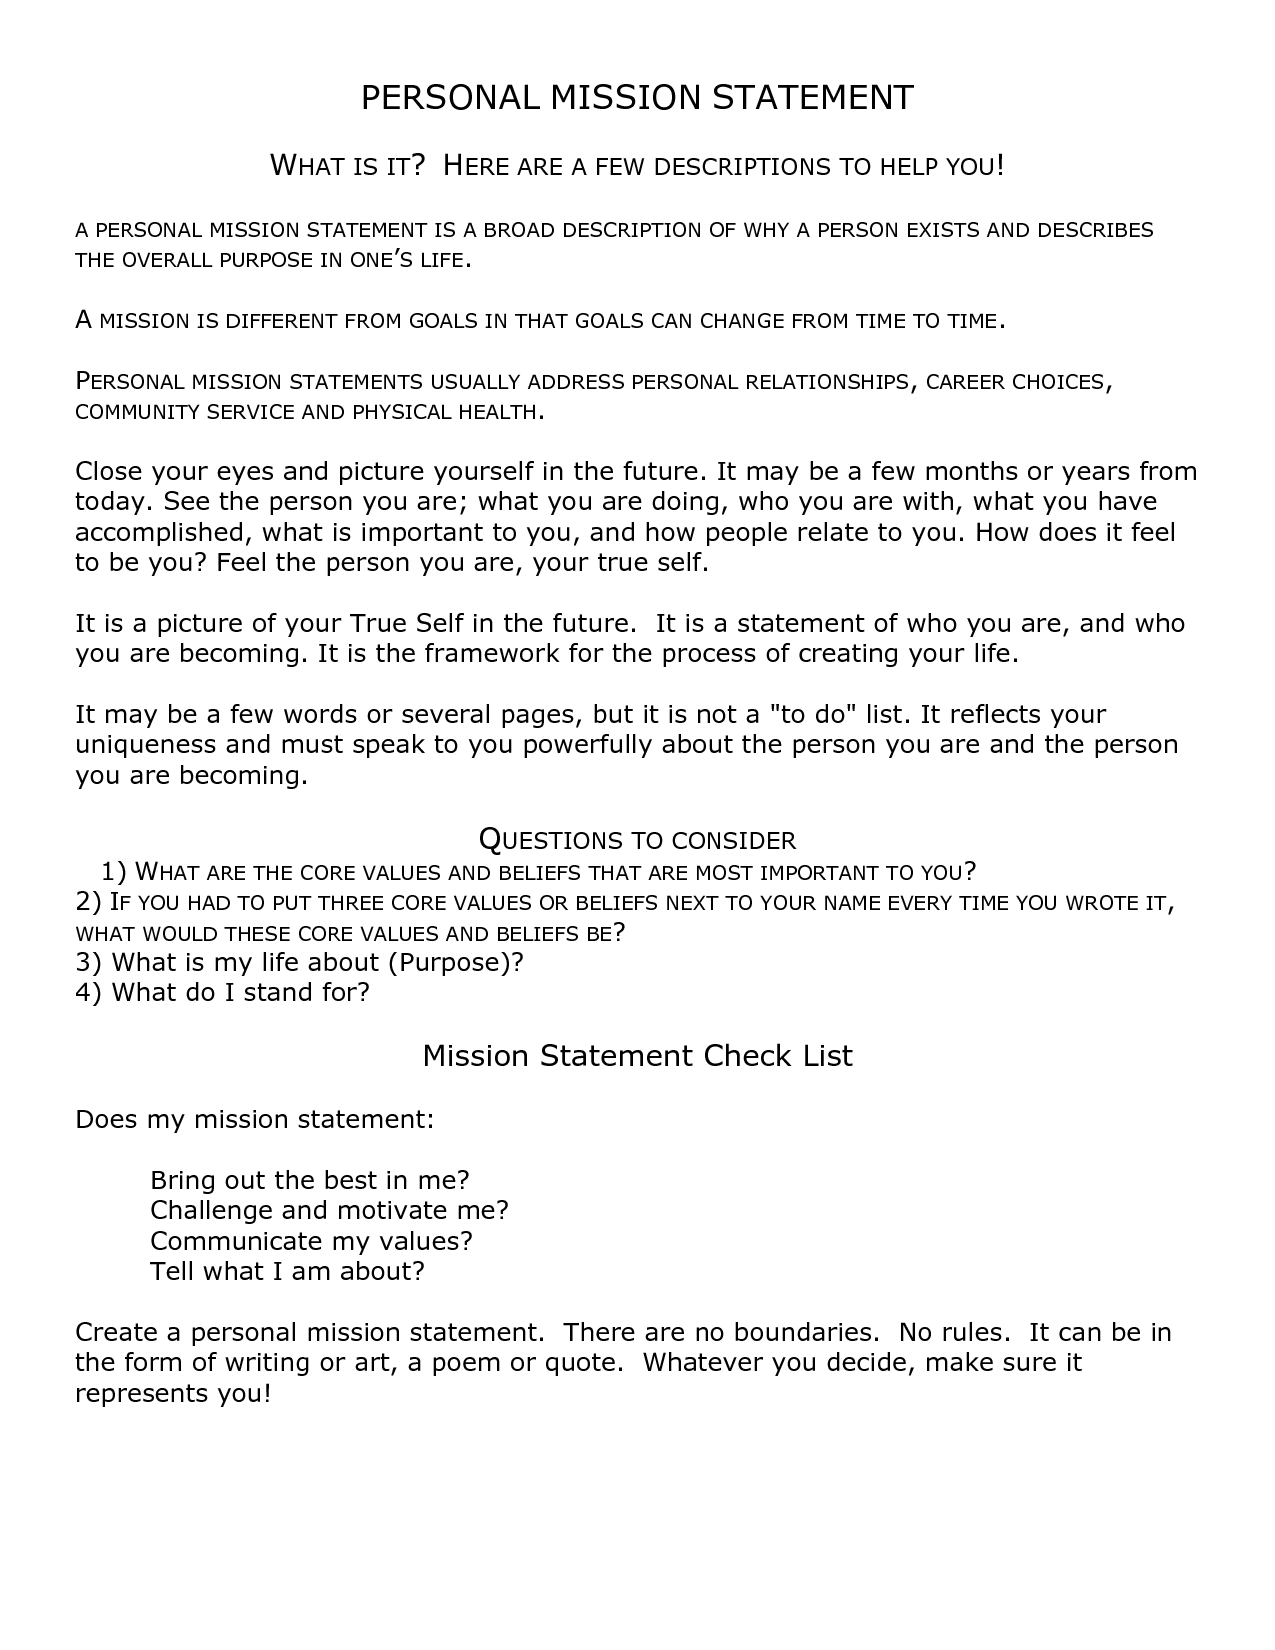 Personal Mission Statement Worksheet Stephen Covey